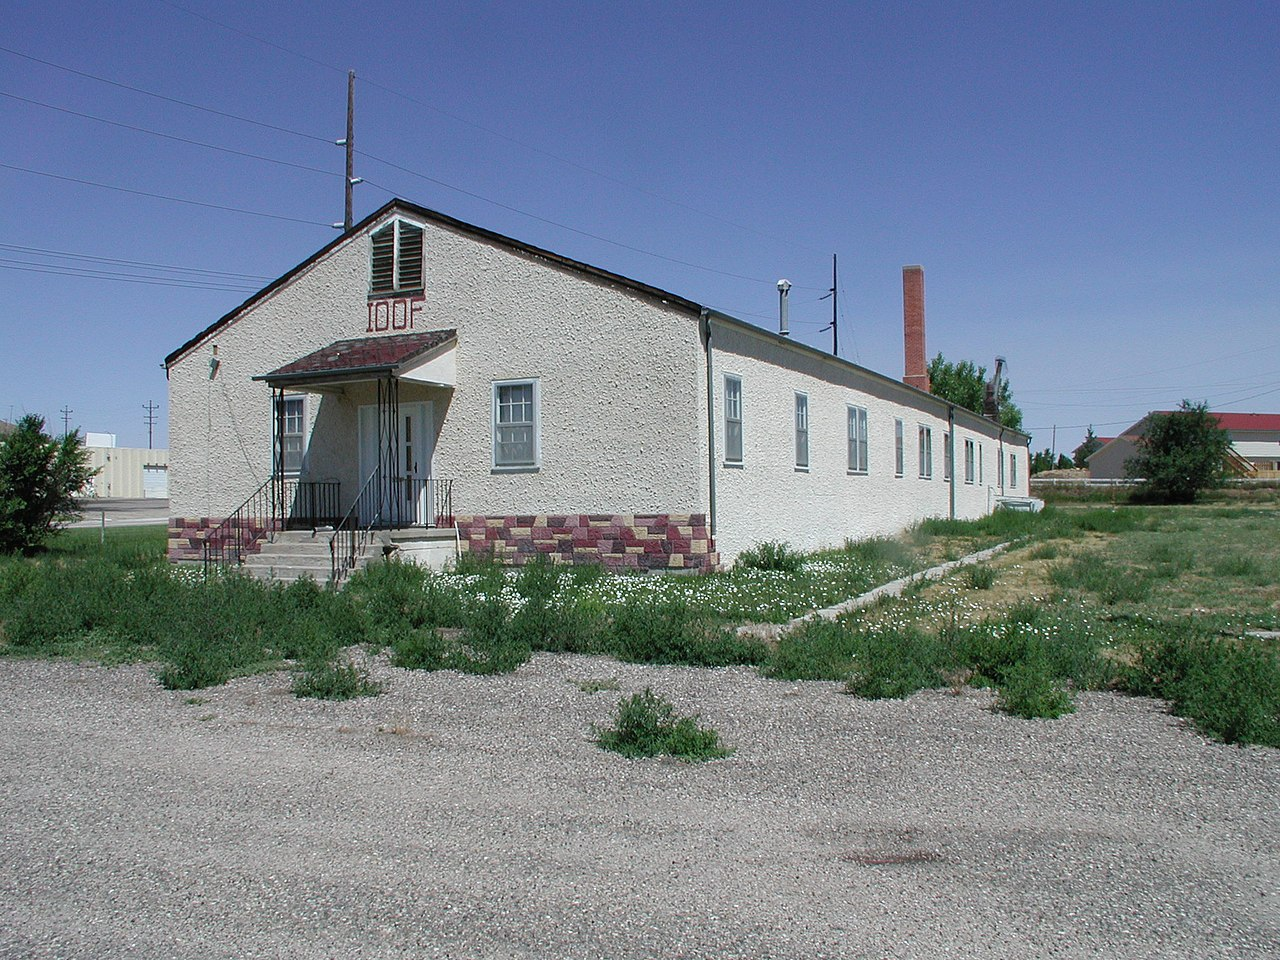 Douglas (WY) United States  City new picture : Original file ‎ 2,048 × 1,536 pixels, file size: 677 KB, MIME type ...